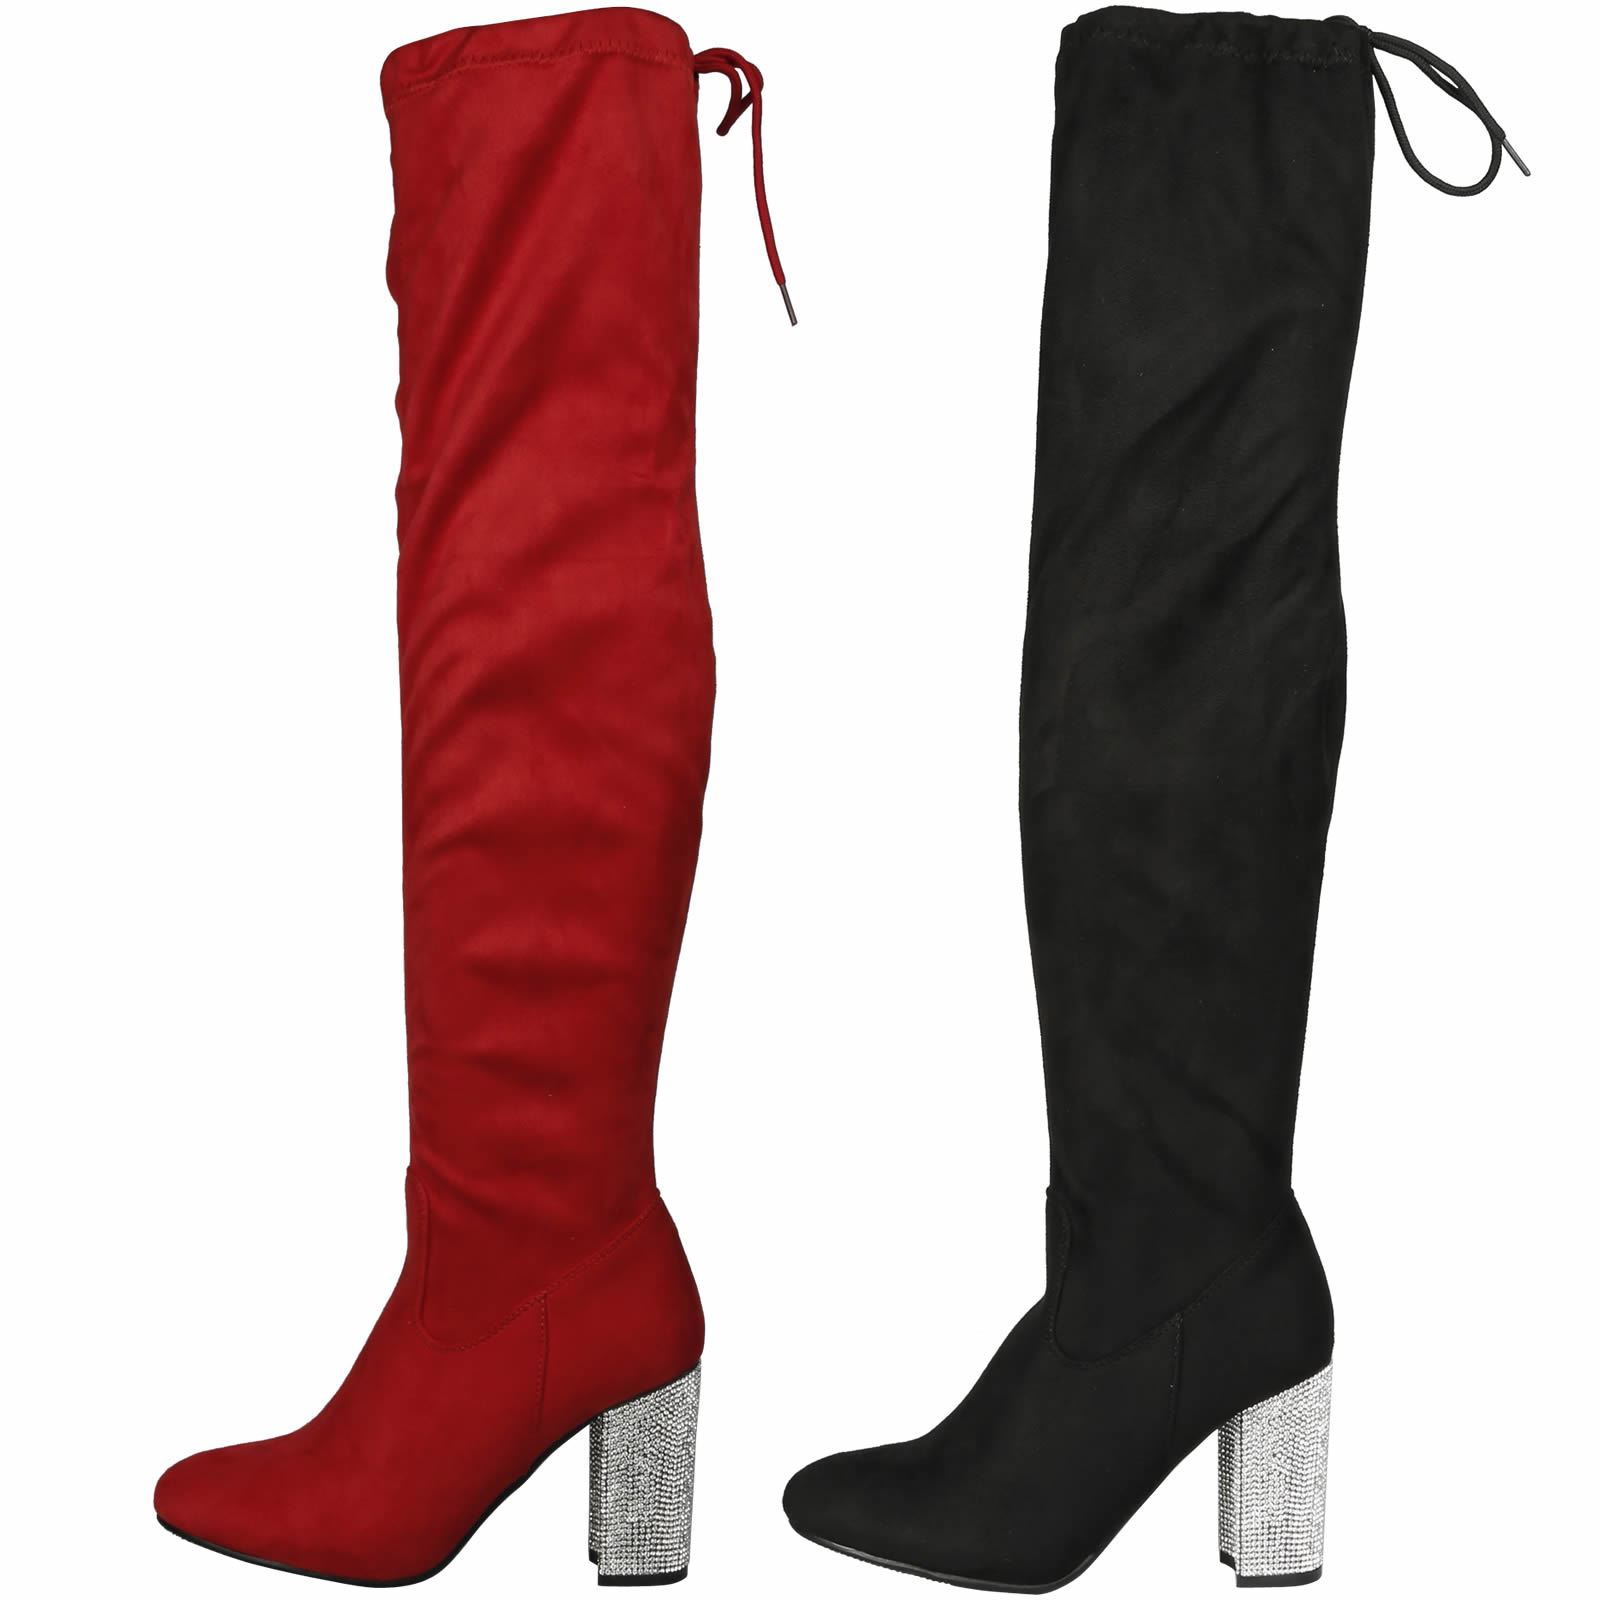 ee87b4127a6 Details about NEW WOMENS SHOES LADIES DIAMANTE MID HIGH BLOCK HEEL KNEE  HIGH BOOTS CASUAL SIZE